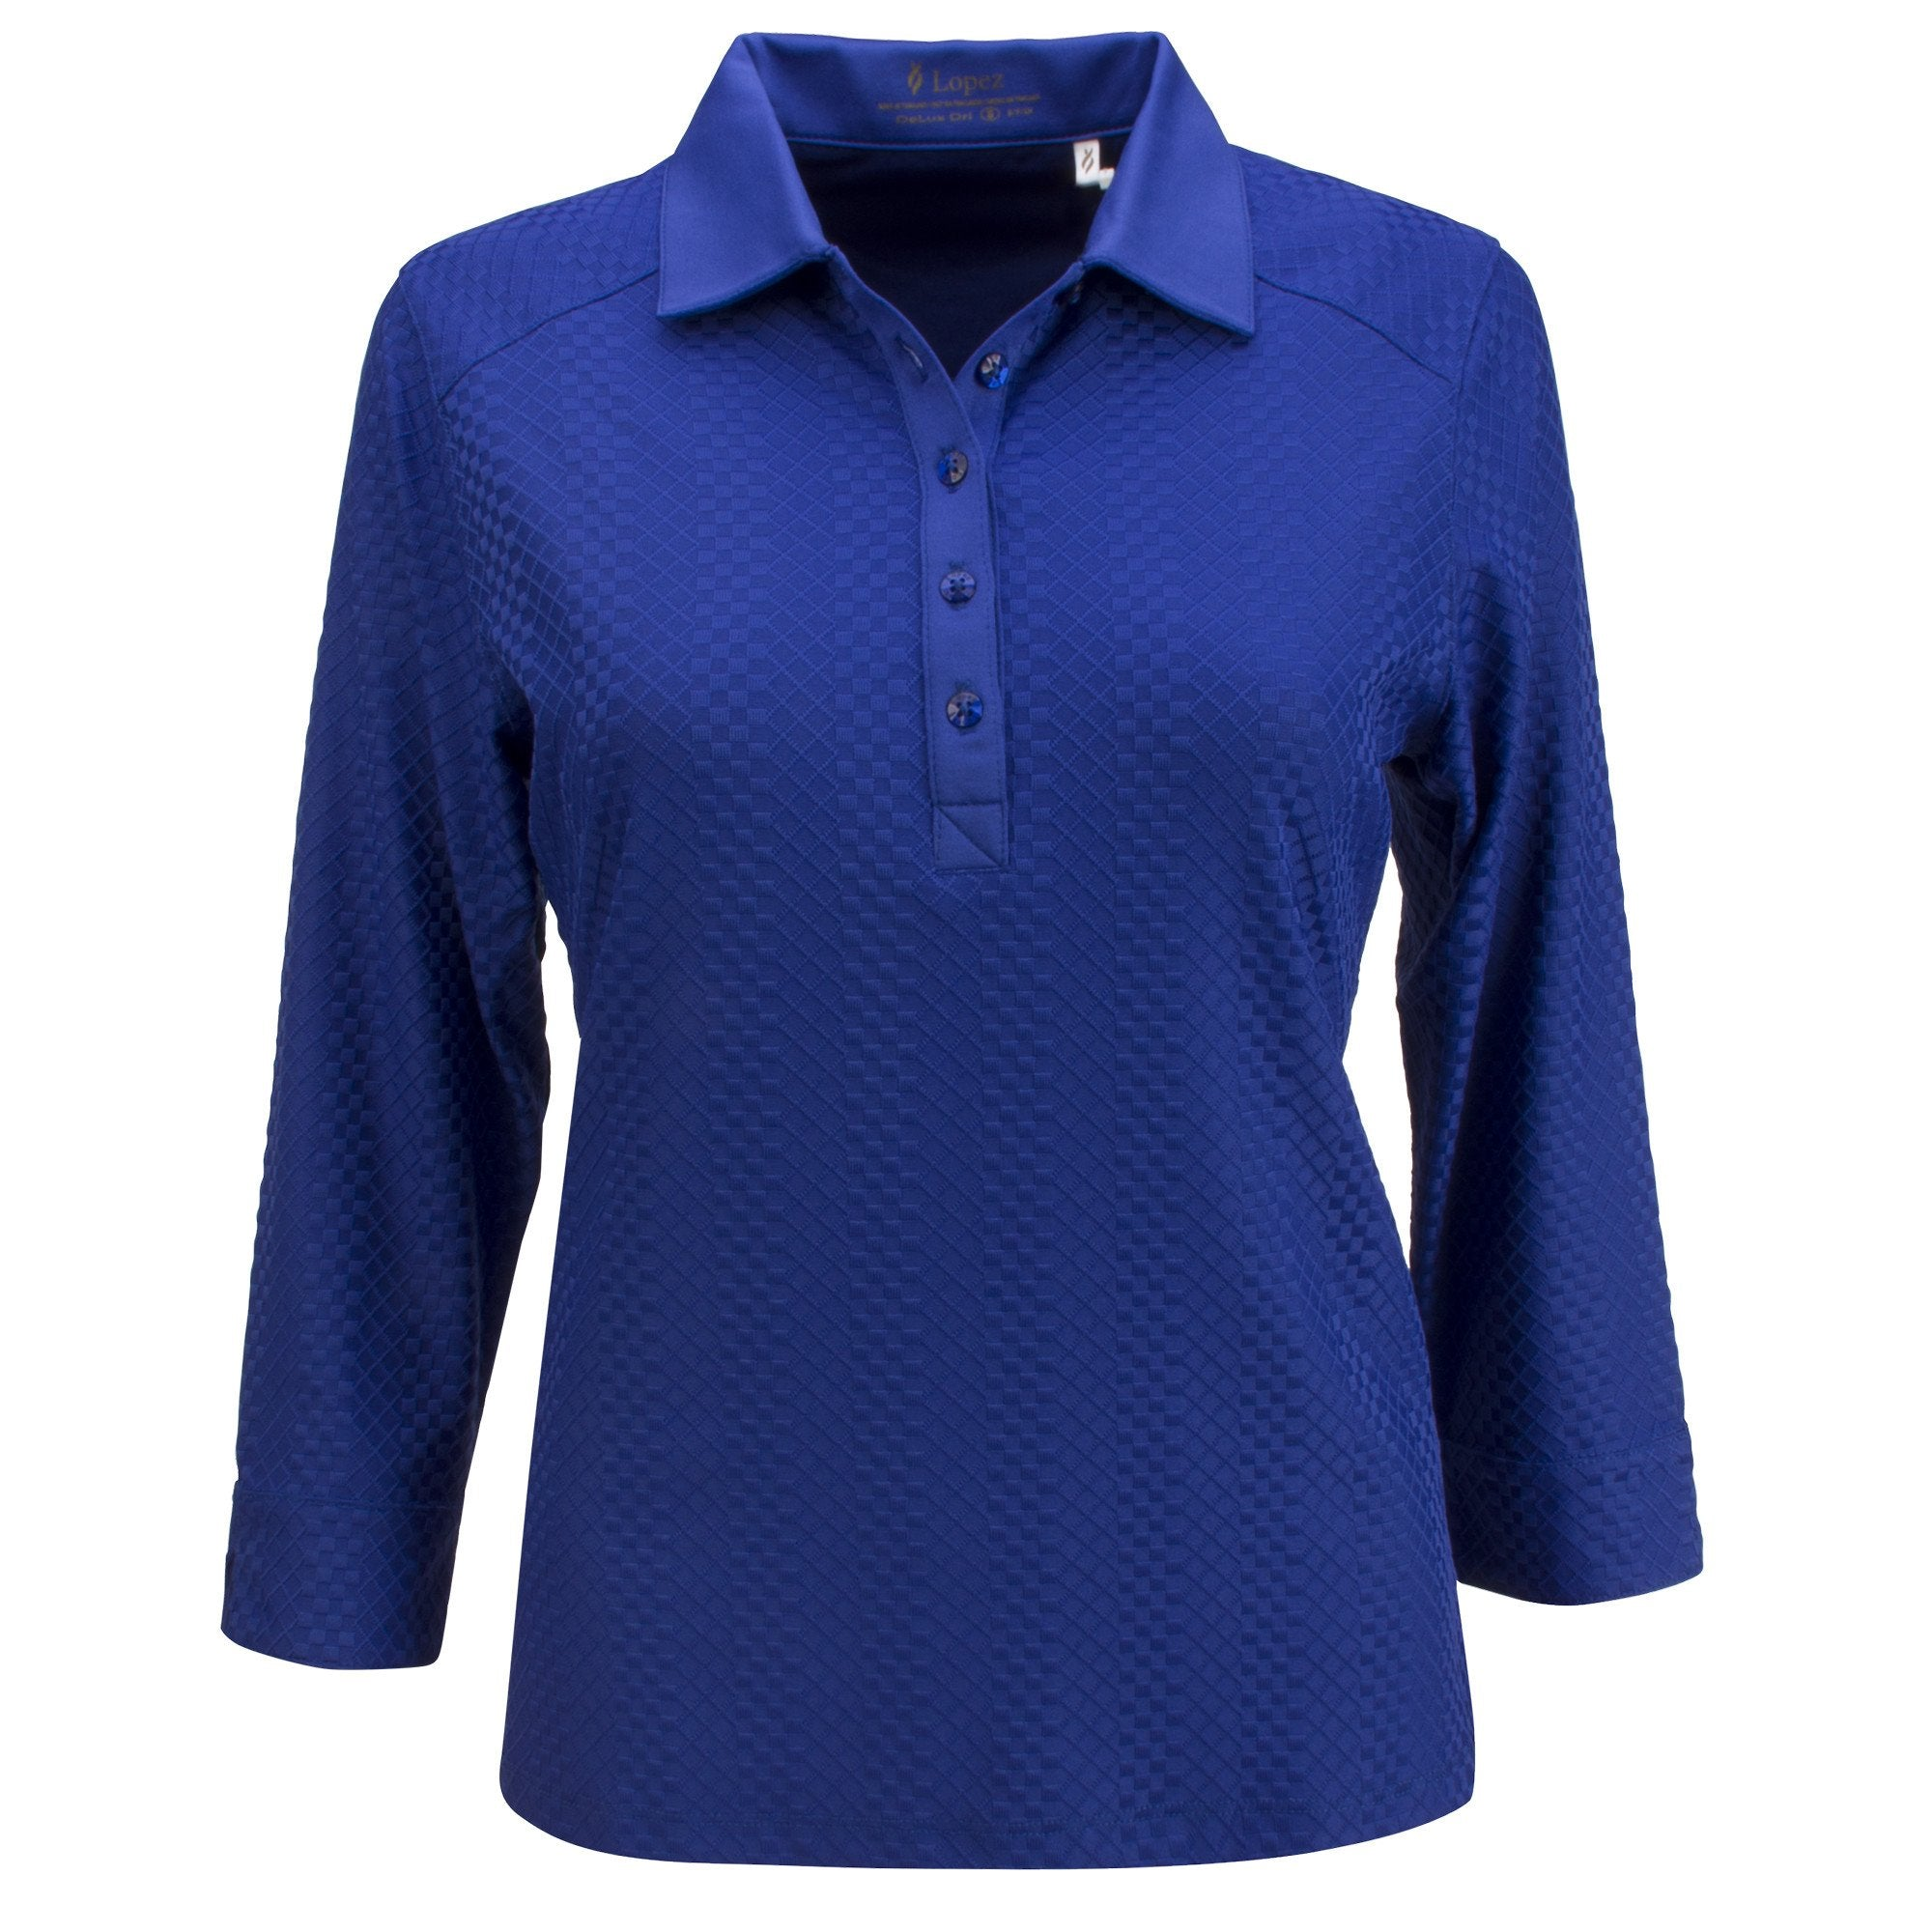 Nancy Lopez Golf Grace 3/4 Sleeve Polo Plus - Twilight